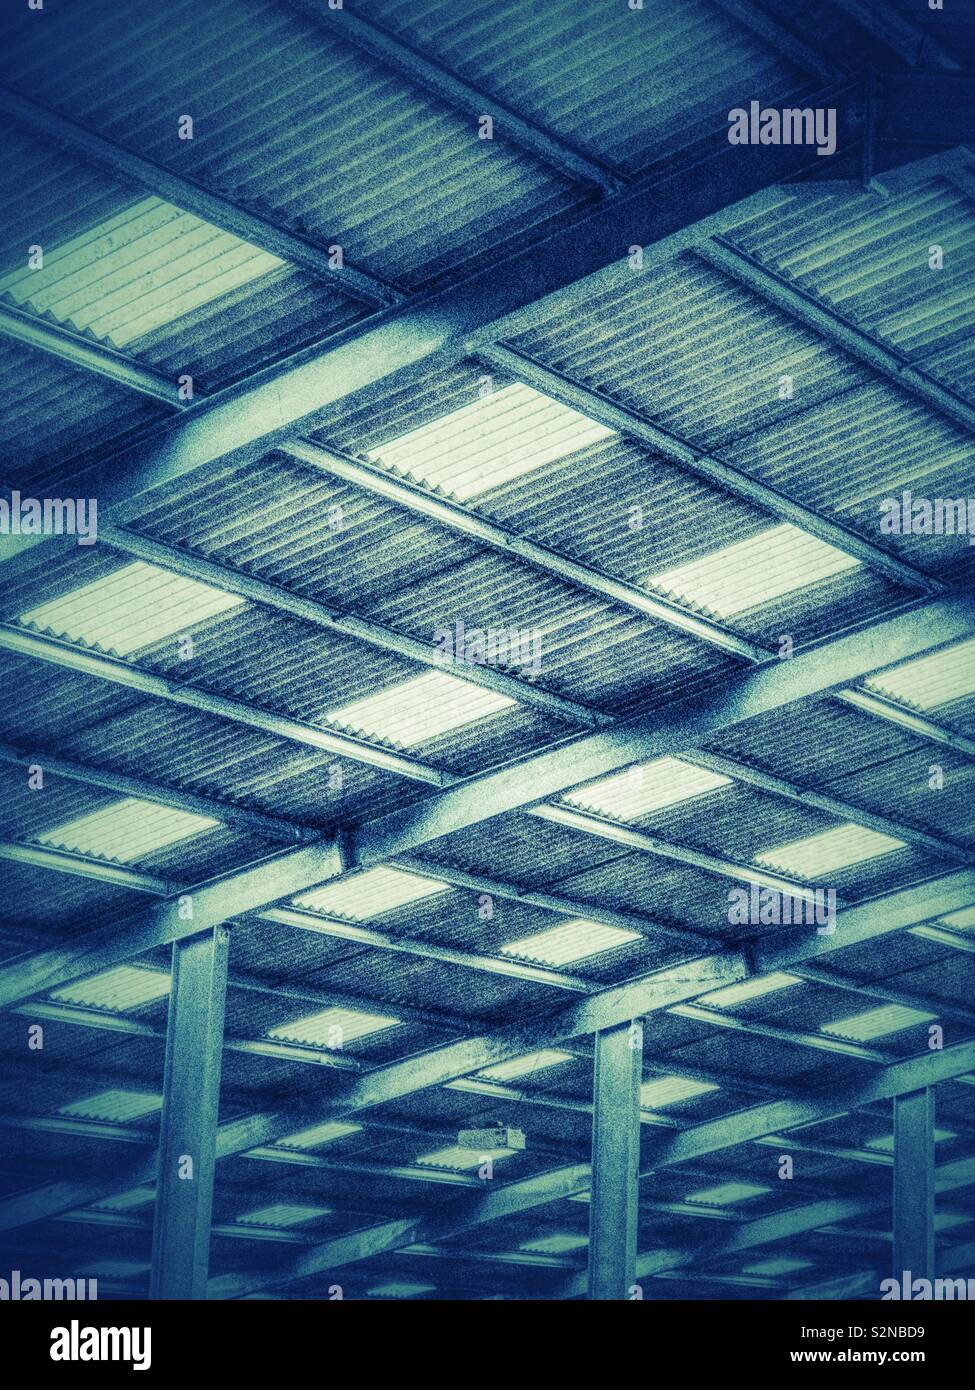 Roof of large agricultural building. - Stock Image